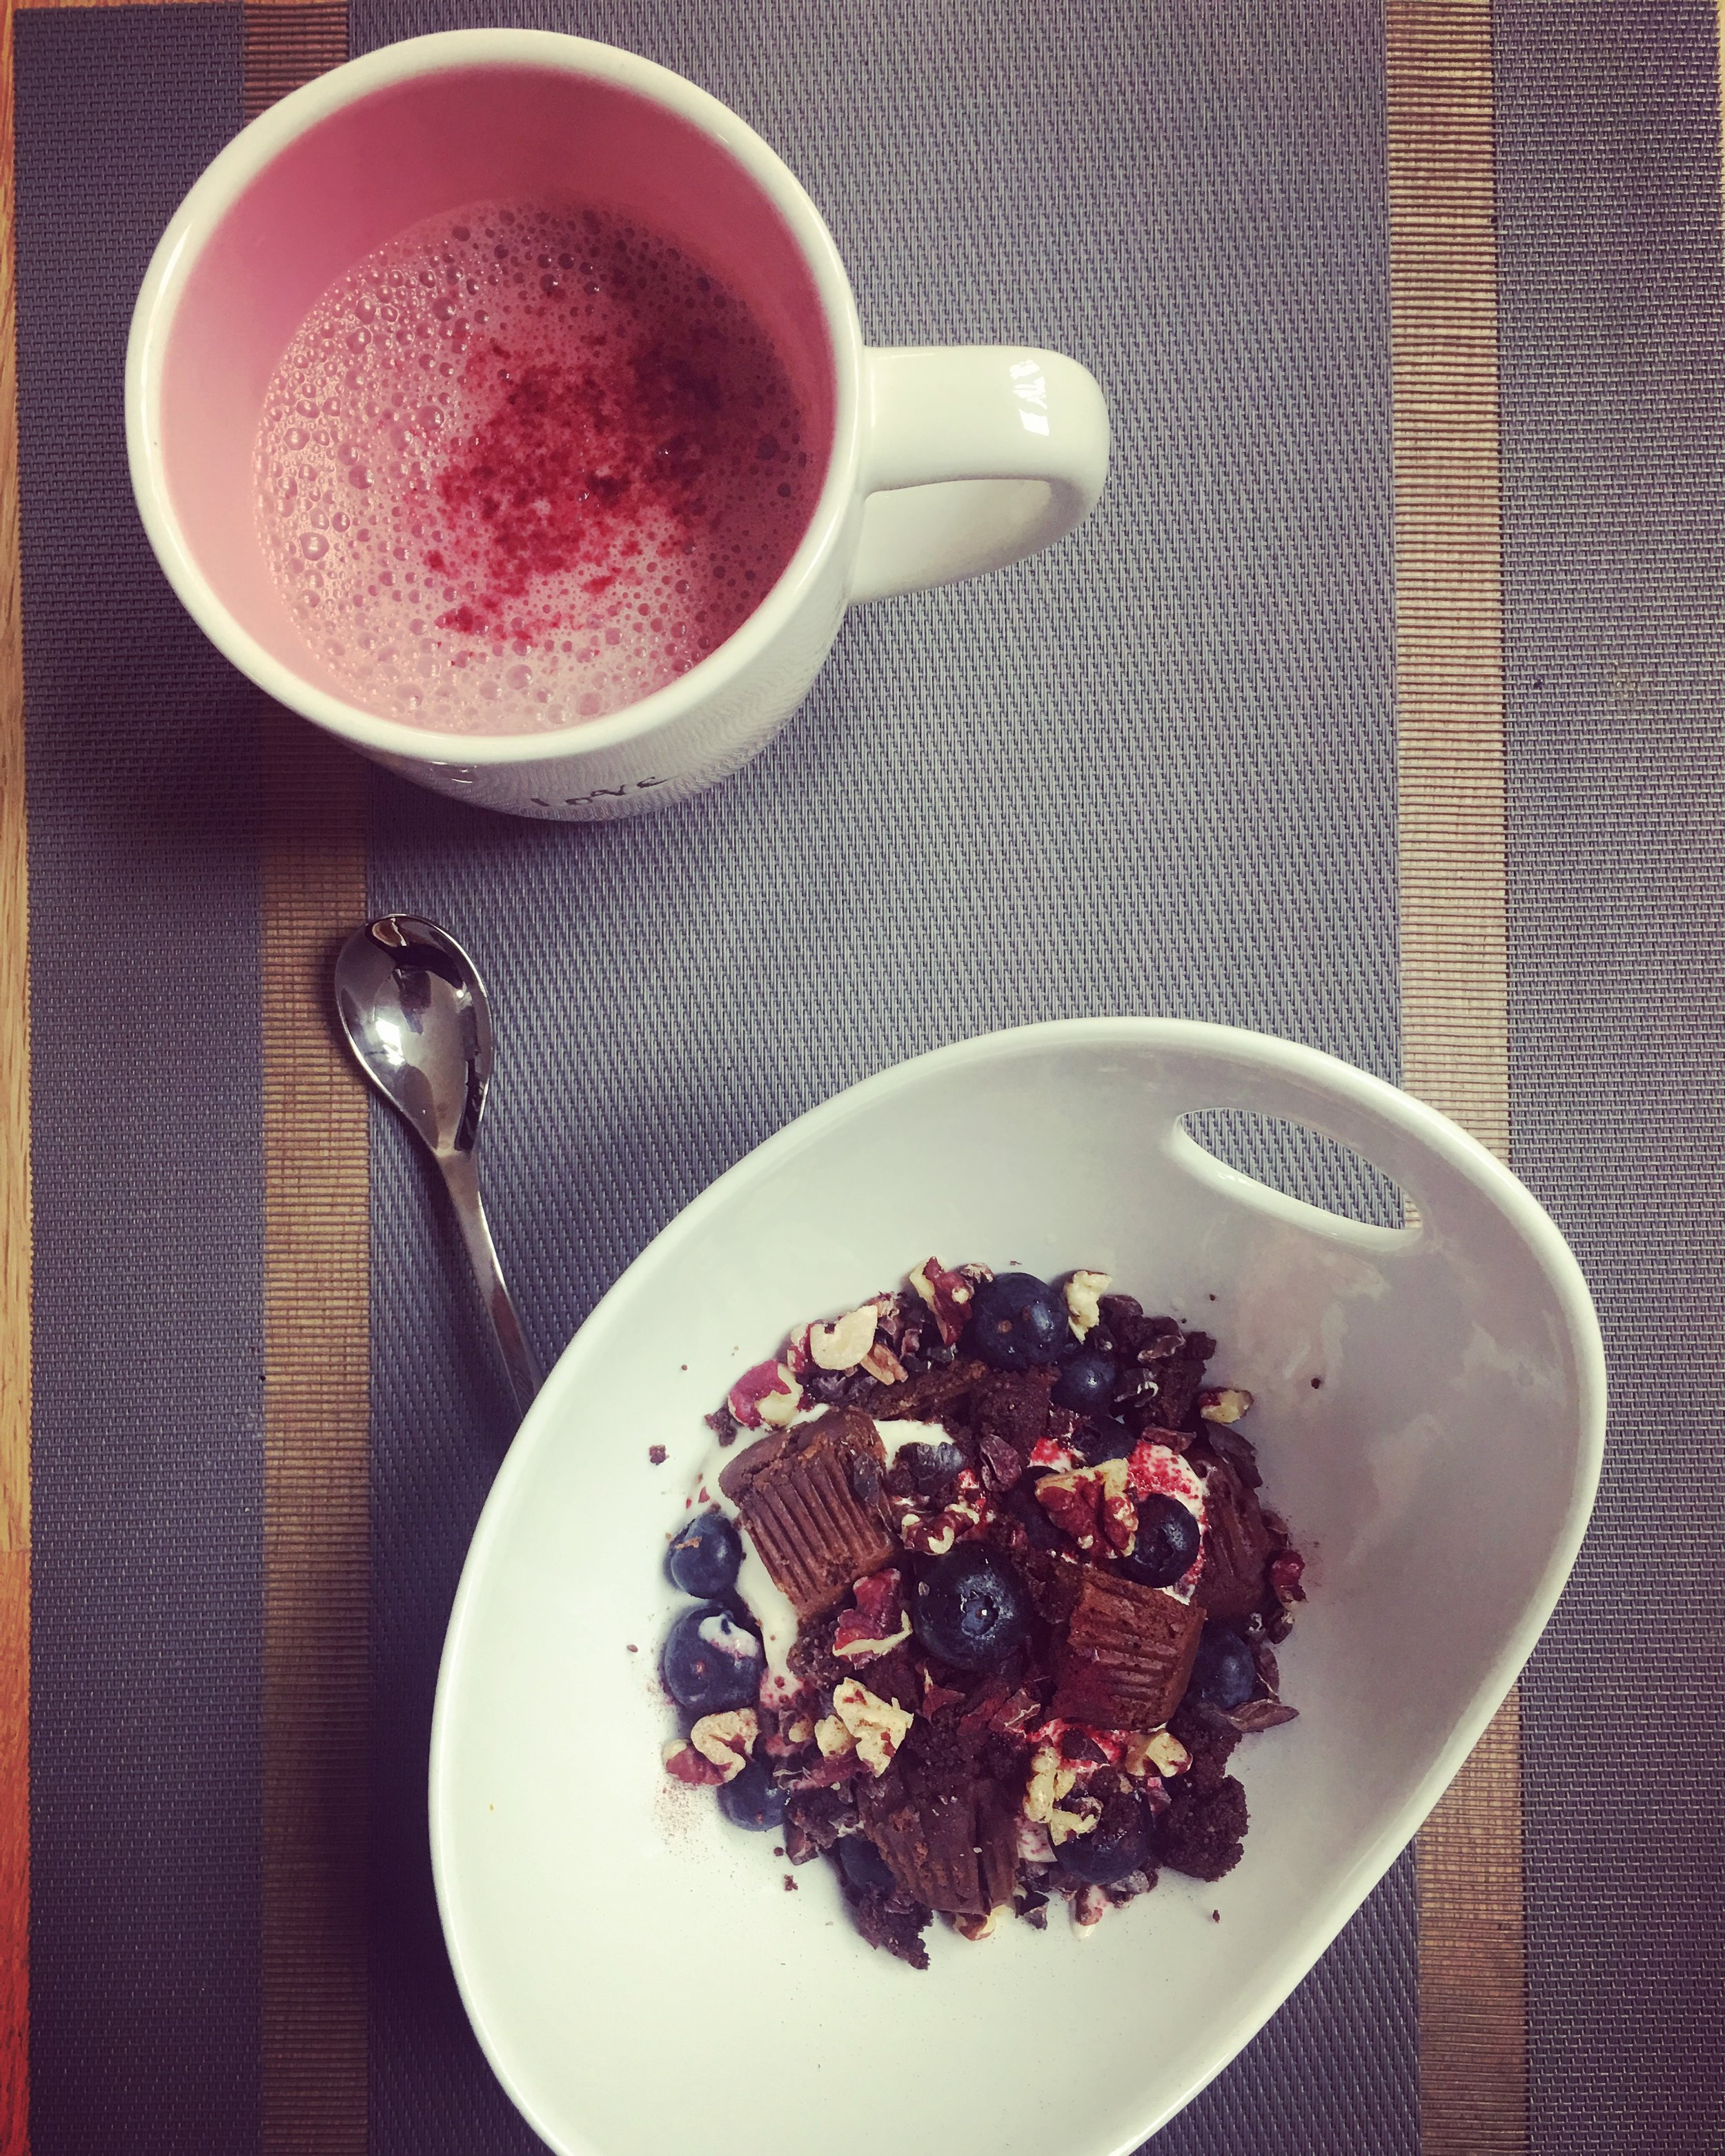 Wow x 1,000,000! Cacao red beet latte with my LOCKED & LOADED yogurt bowl. Smaller portions helps with mindfulness and not overeating.